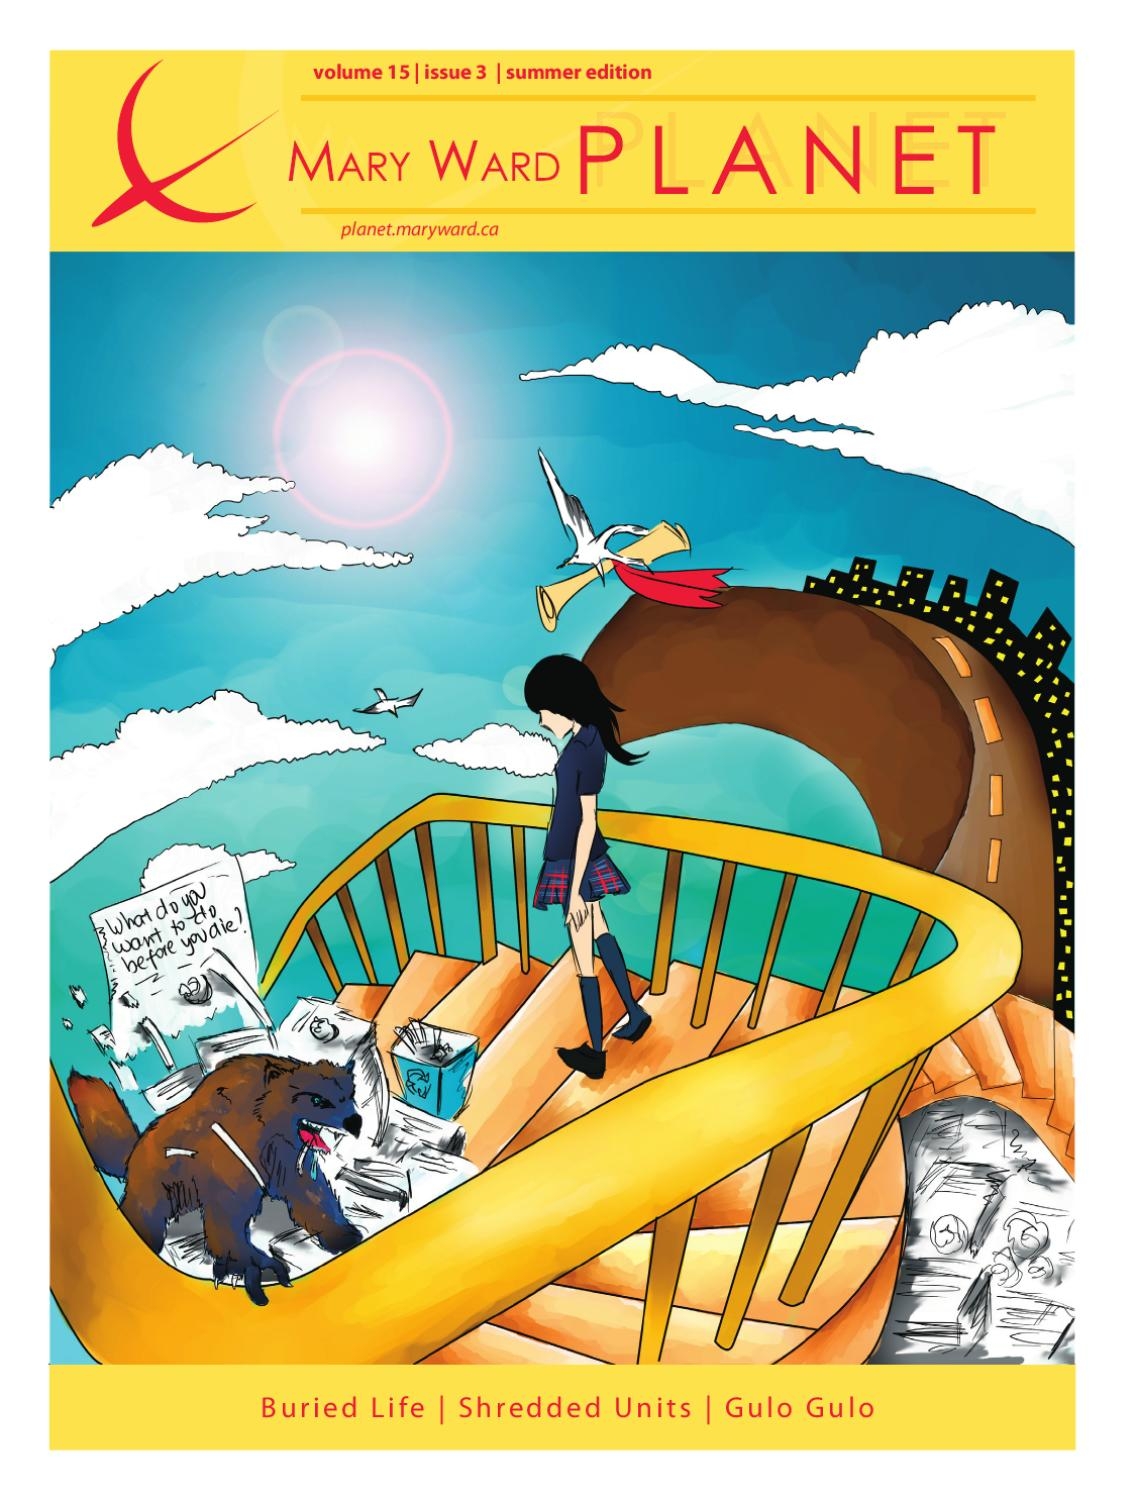 Mary Ward Planet - Vol.15, Issue 3, Summer 2009-10 by Mary Ward ...